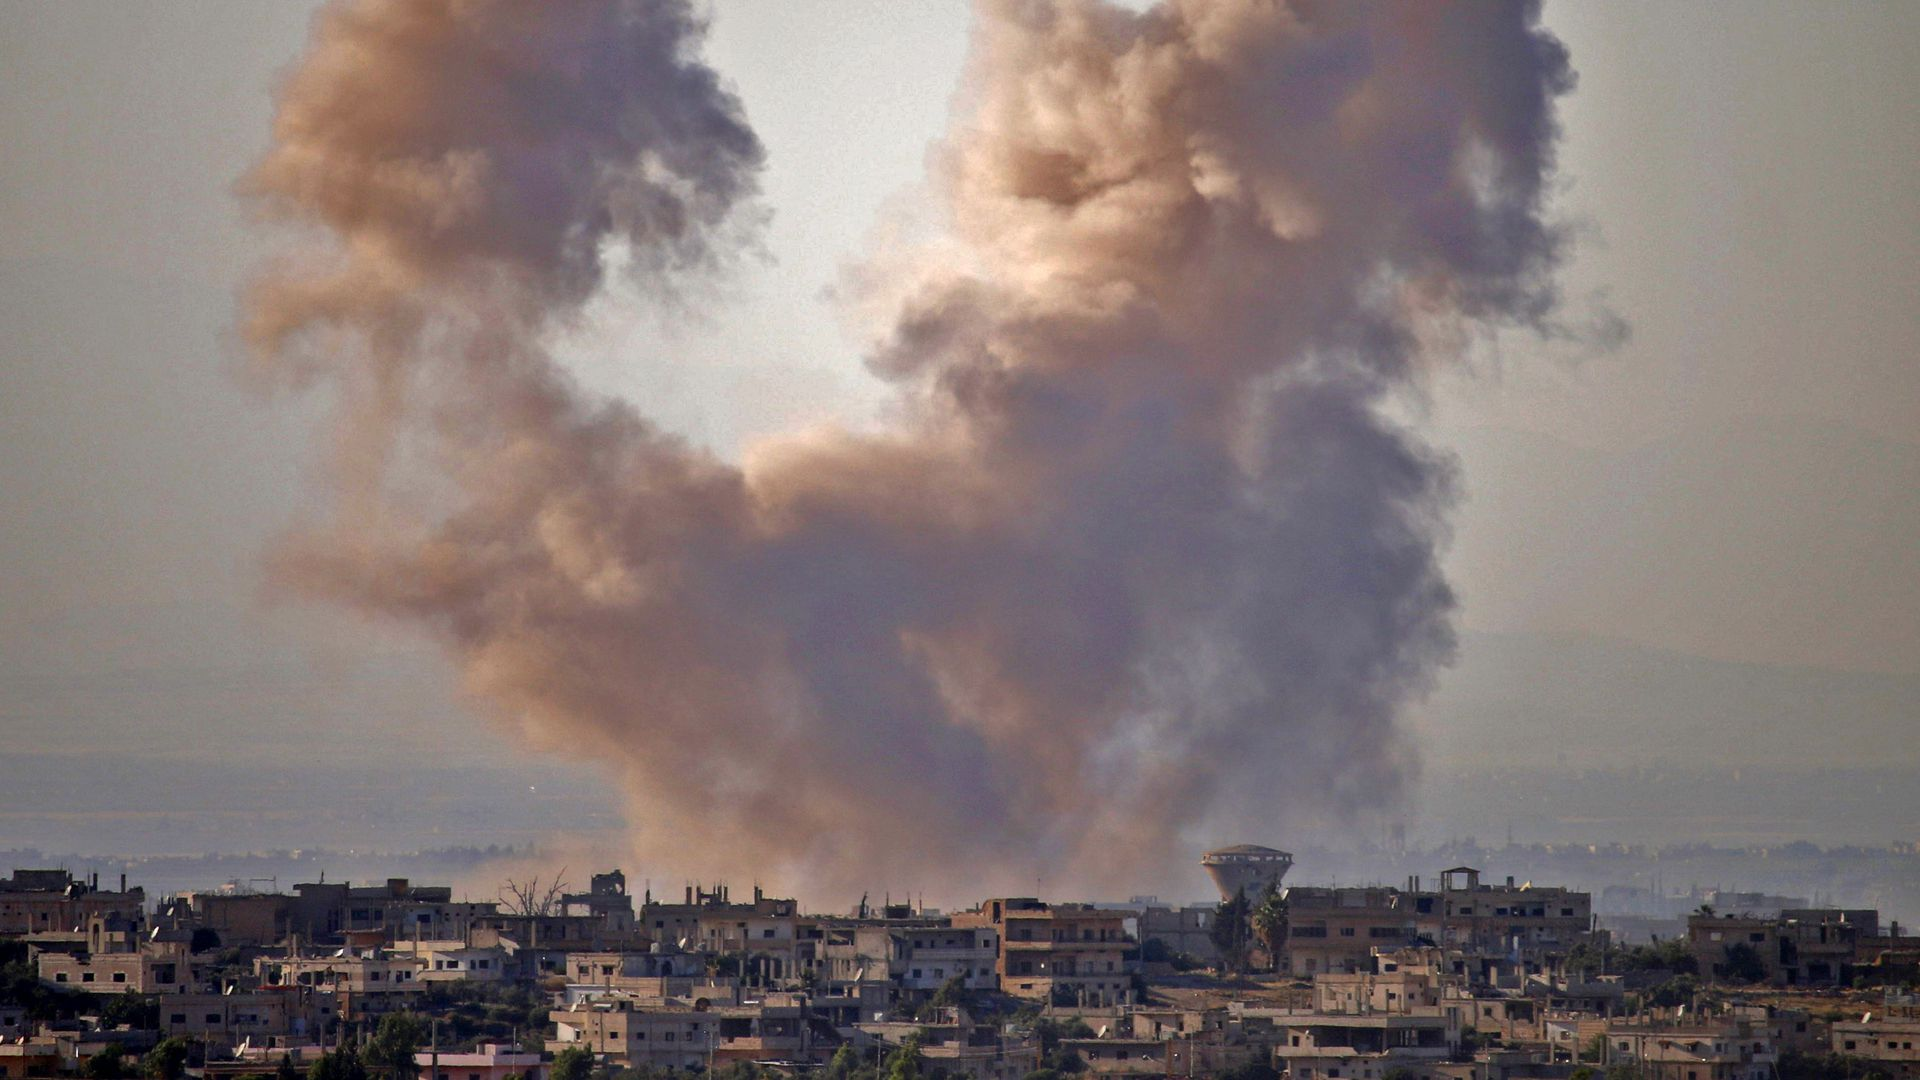 smoke rising over town of Daraa, Syria, after an airstrike